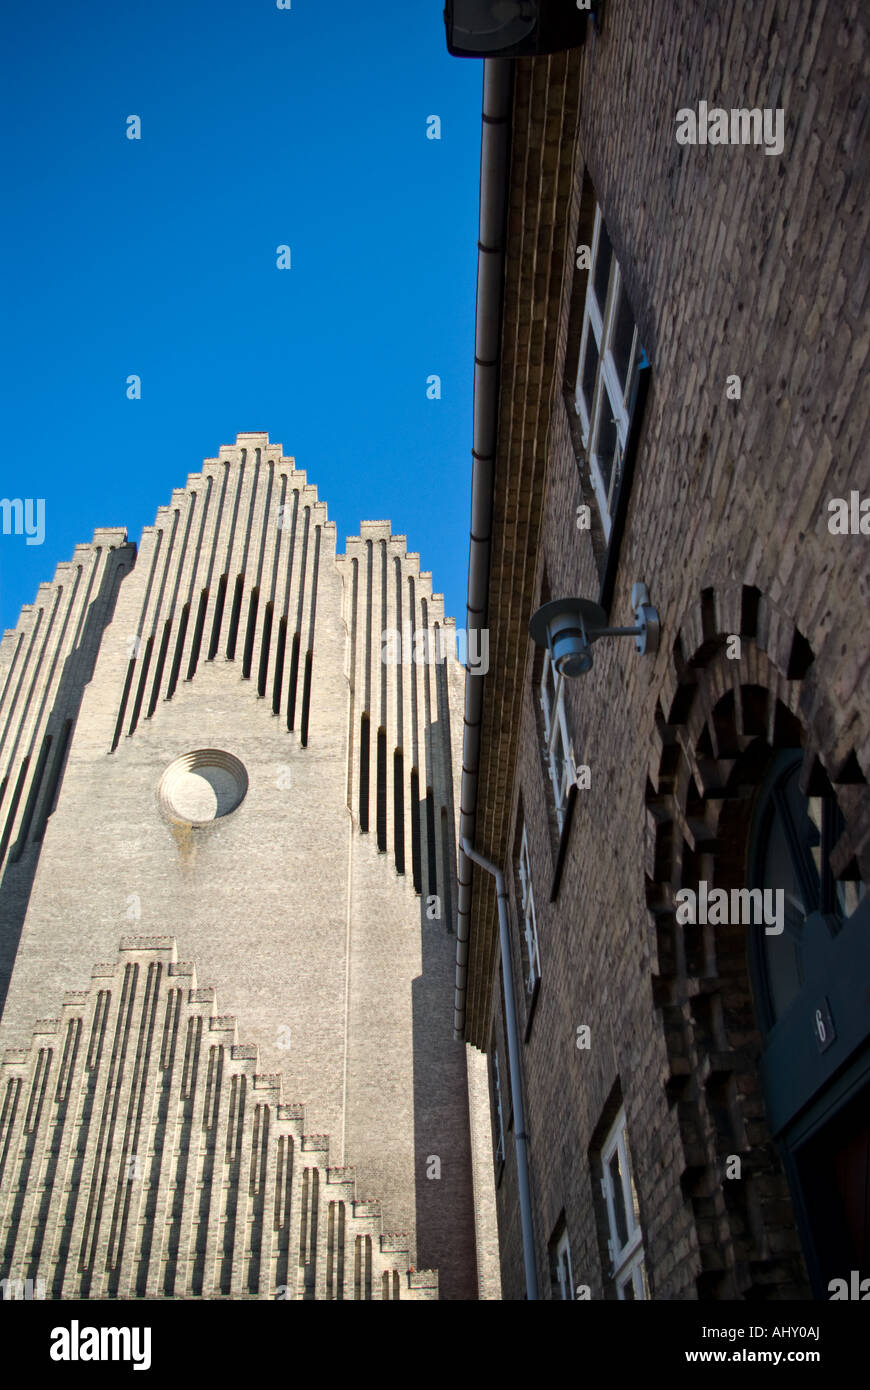 Grundtvigs Kirke (Grundtvigs Church) and a neighbouring building. - Stock Image